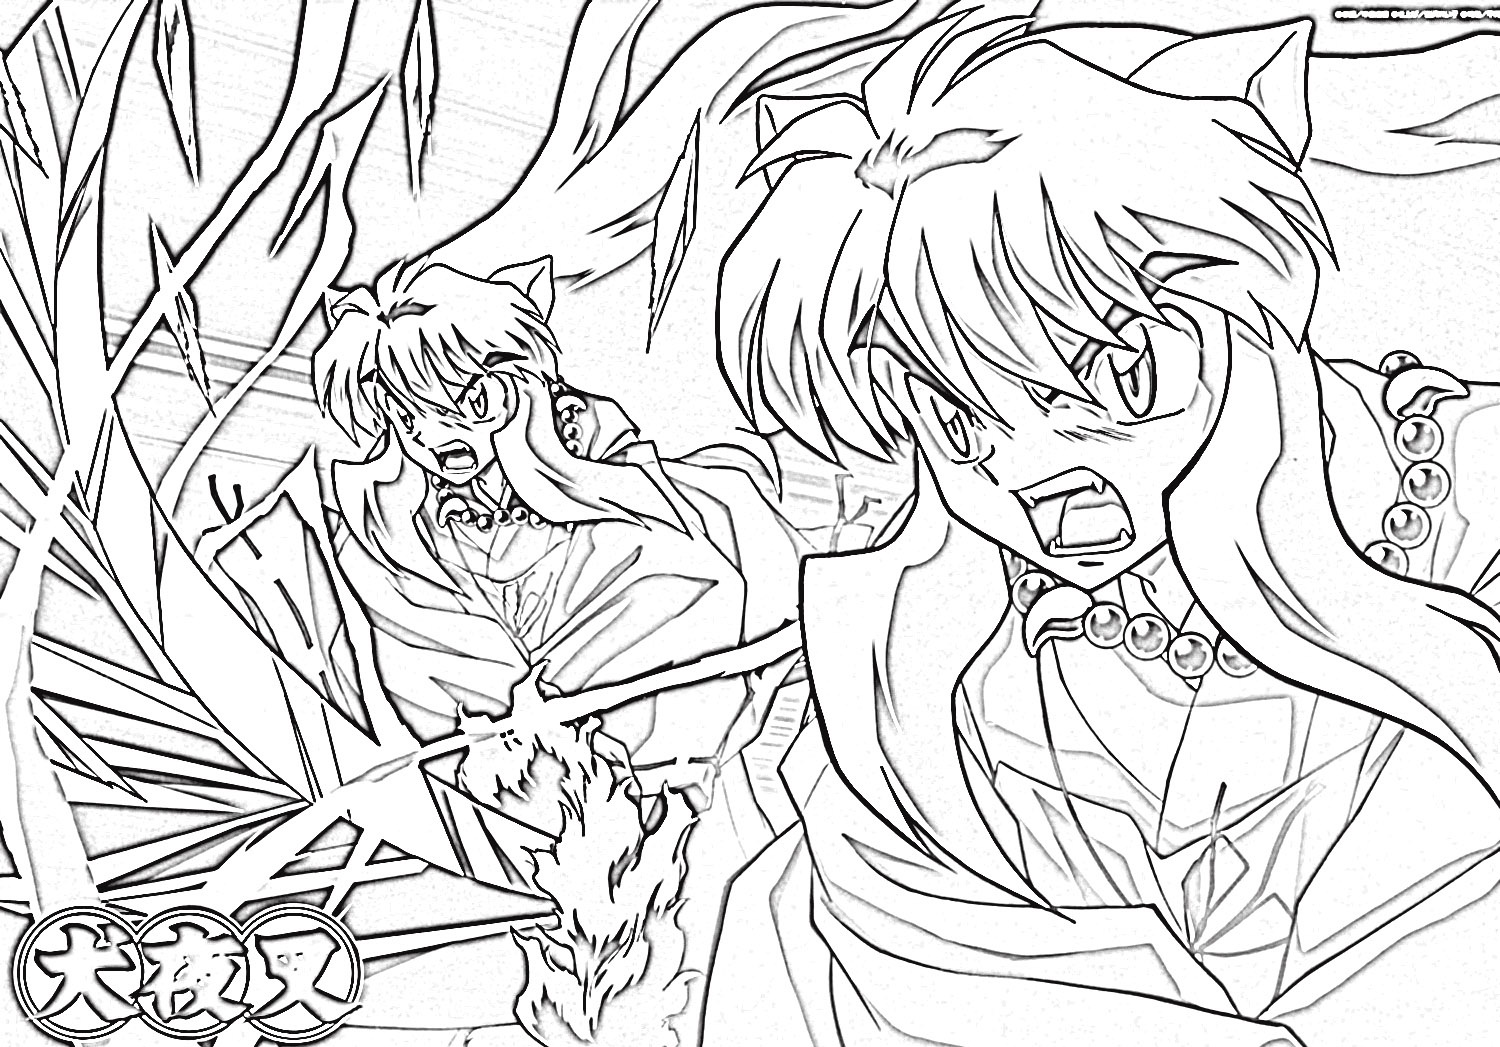 Free printable inuyasha coloring pages for kids Coloring Pages Inuyasha Coloring Mobile Flower Coloring Pages Ayame Inuyasha Coloring Pages